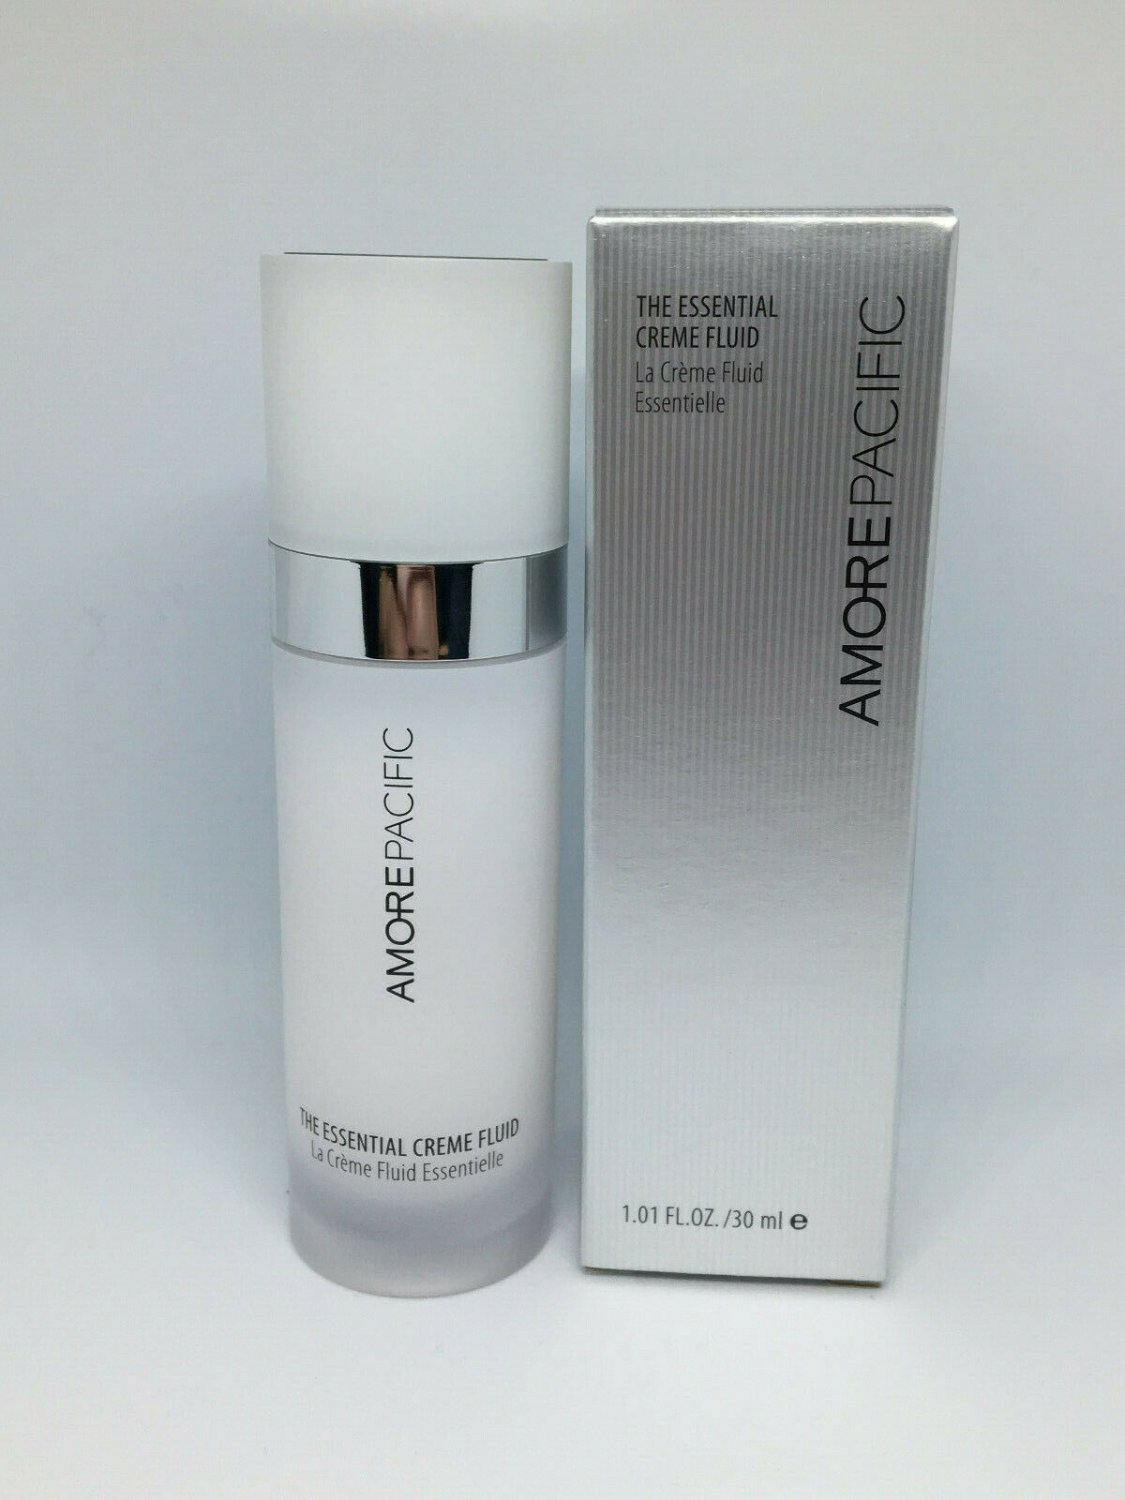 AMOREPACIFIC The Essential Creme Fluid travel size Amore Pacific Moisturizer